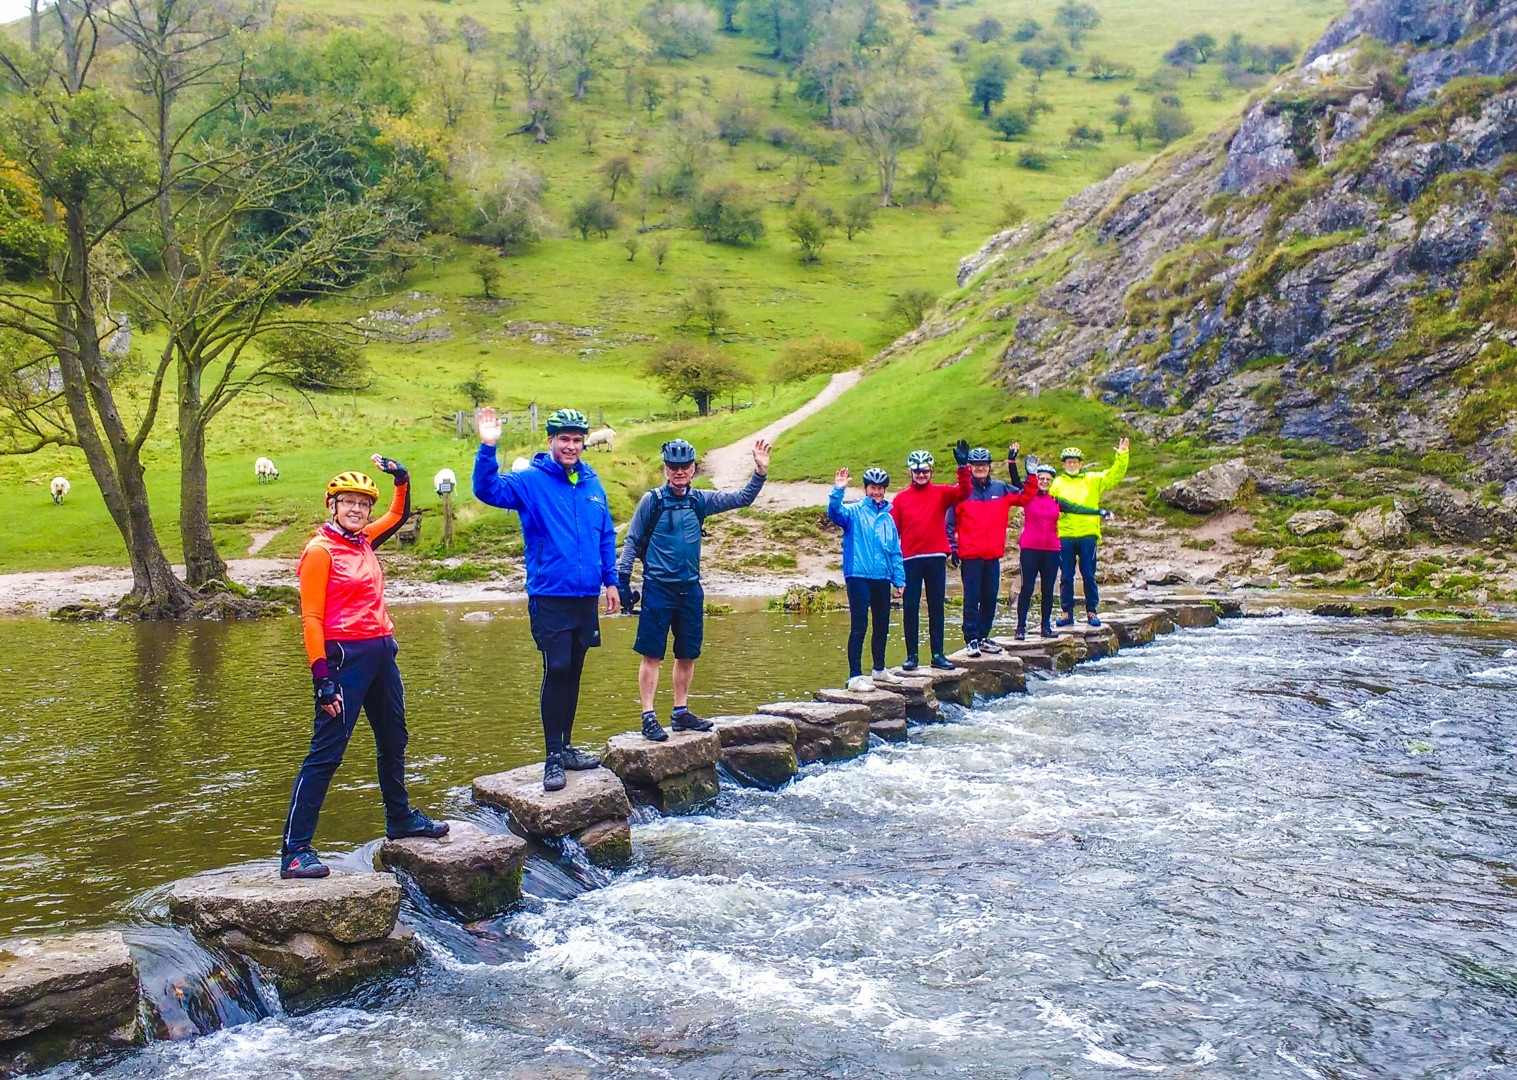 _Staff.420.36460-2.jpg - UK - Derbyshire Dales - Dovedale - Self-Guided Leisure Cycling Holiday - Leisure Cycling